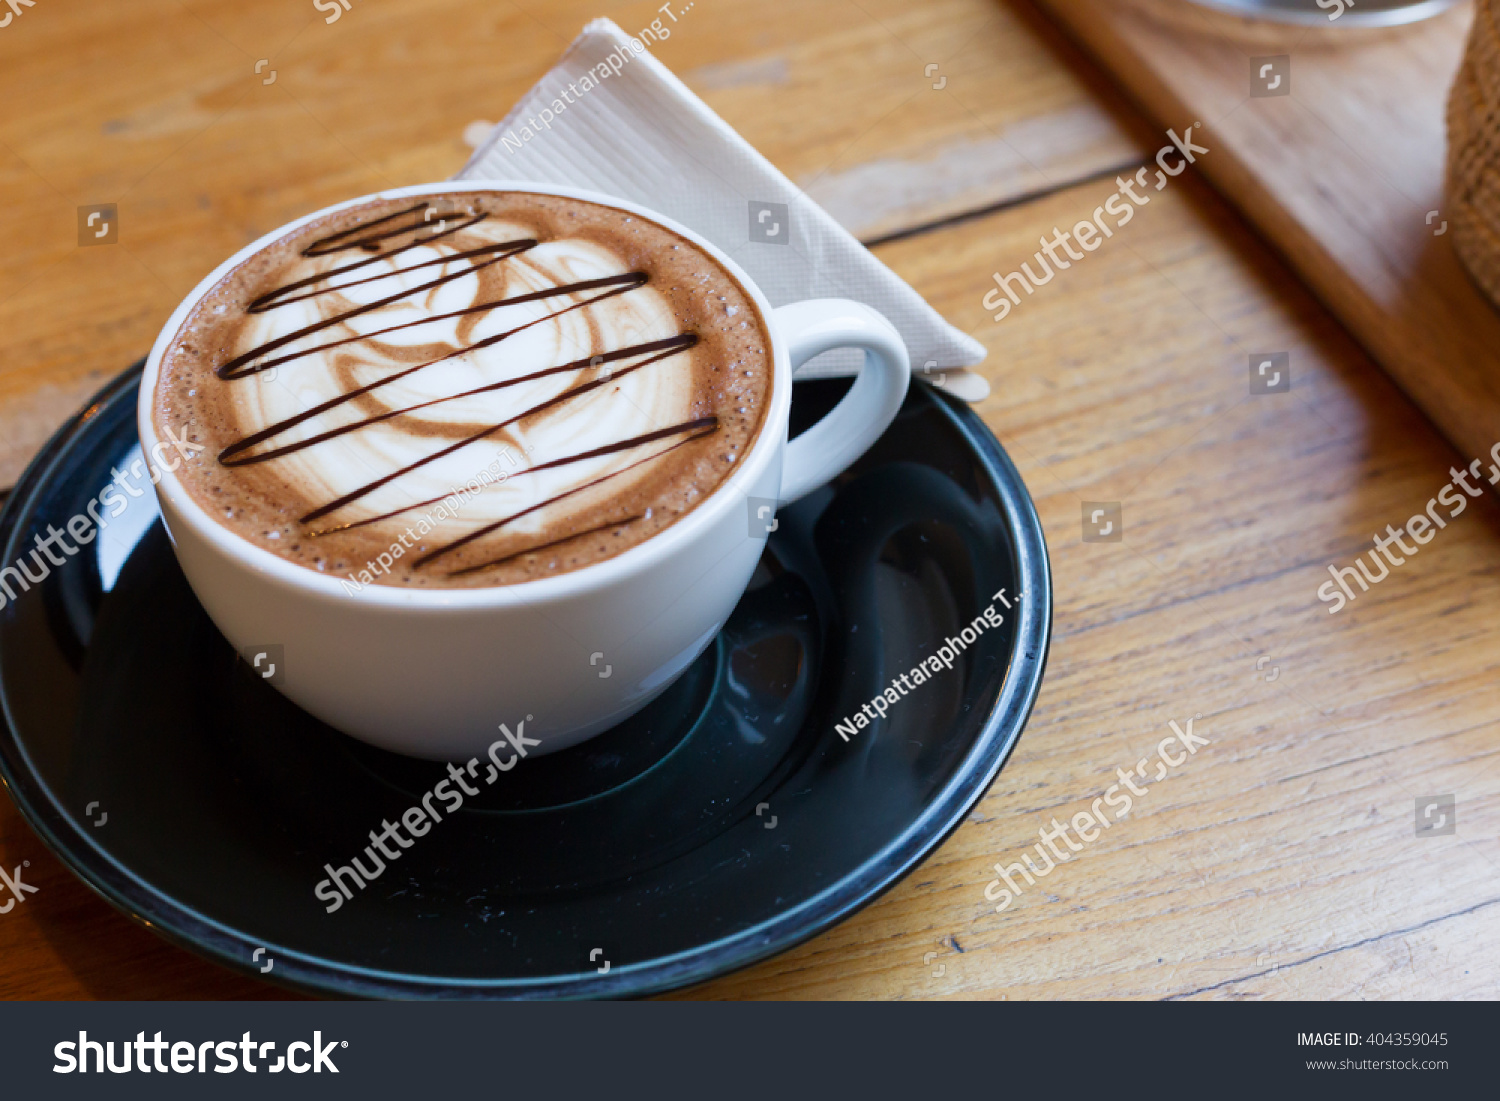 Mocha coffee in the wood table #404359045